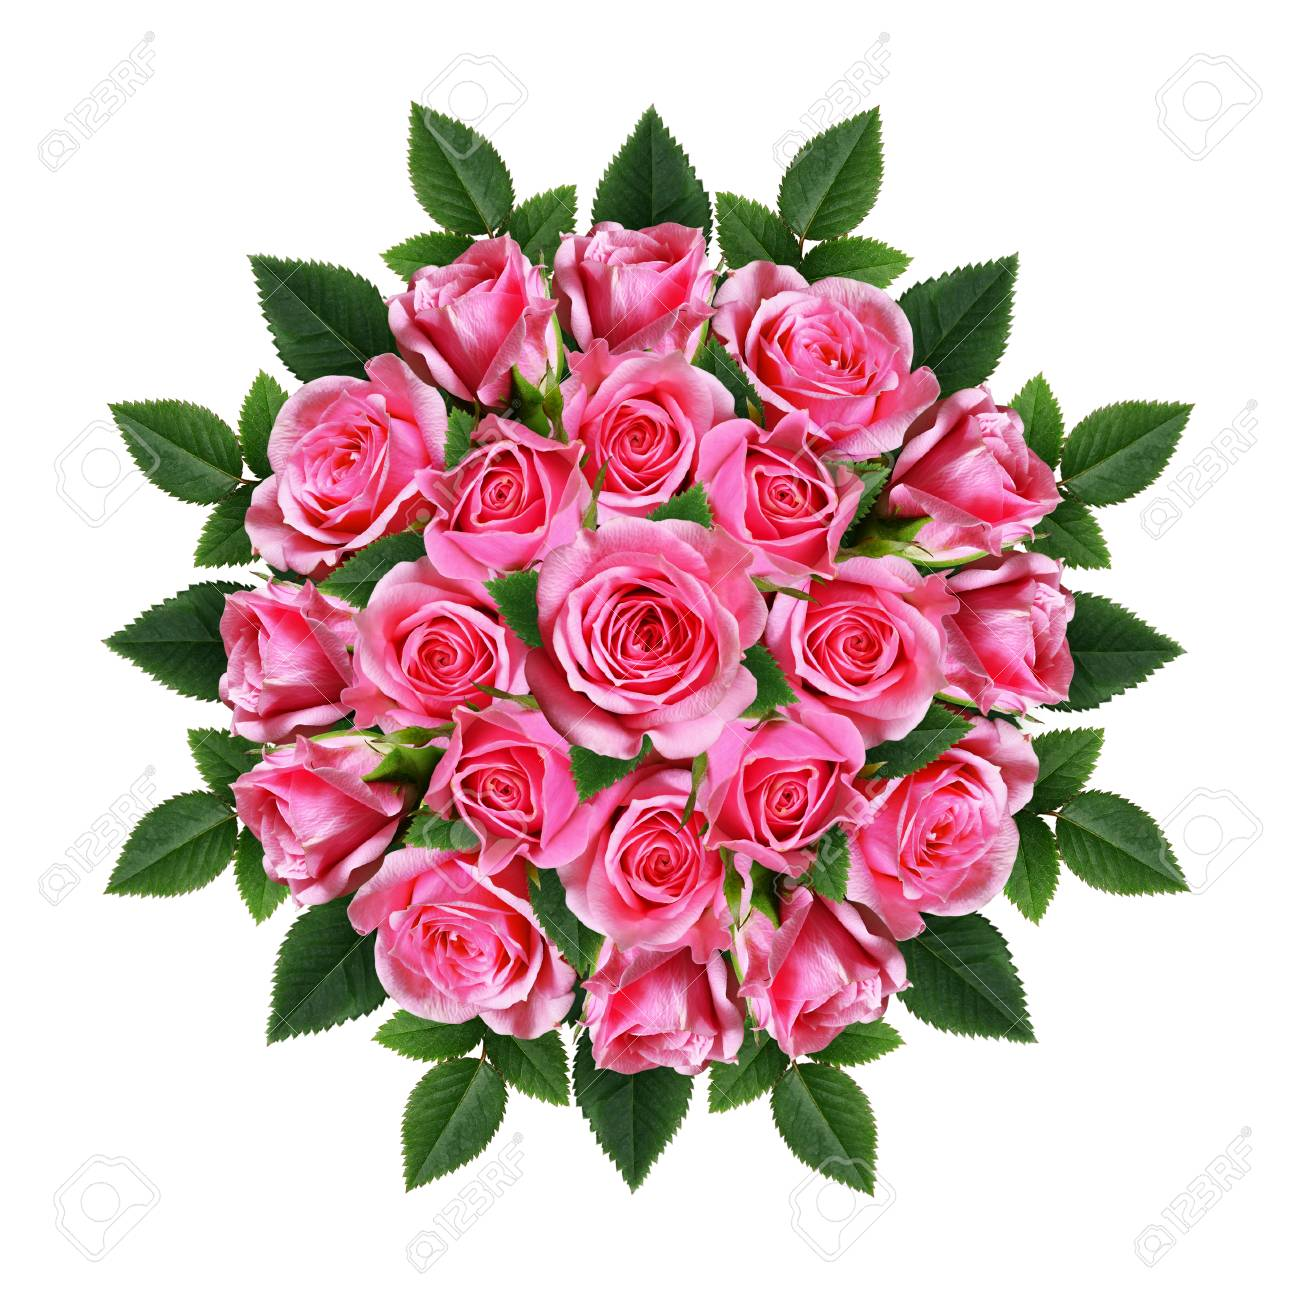 Ordered round bouquet of beautiful pink rose flowers isolated ordered round bouquet of beautiful pink rose flowers isolated on white stock photo 78599956 izmirmasajfo